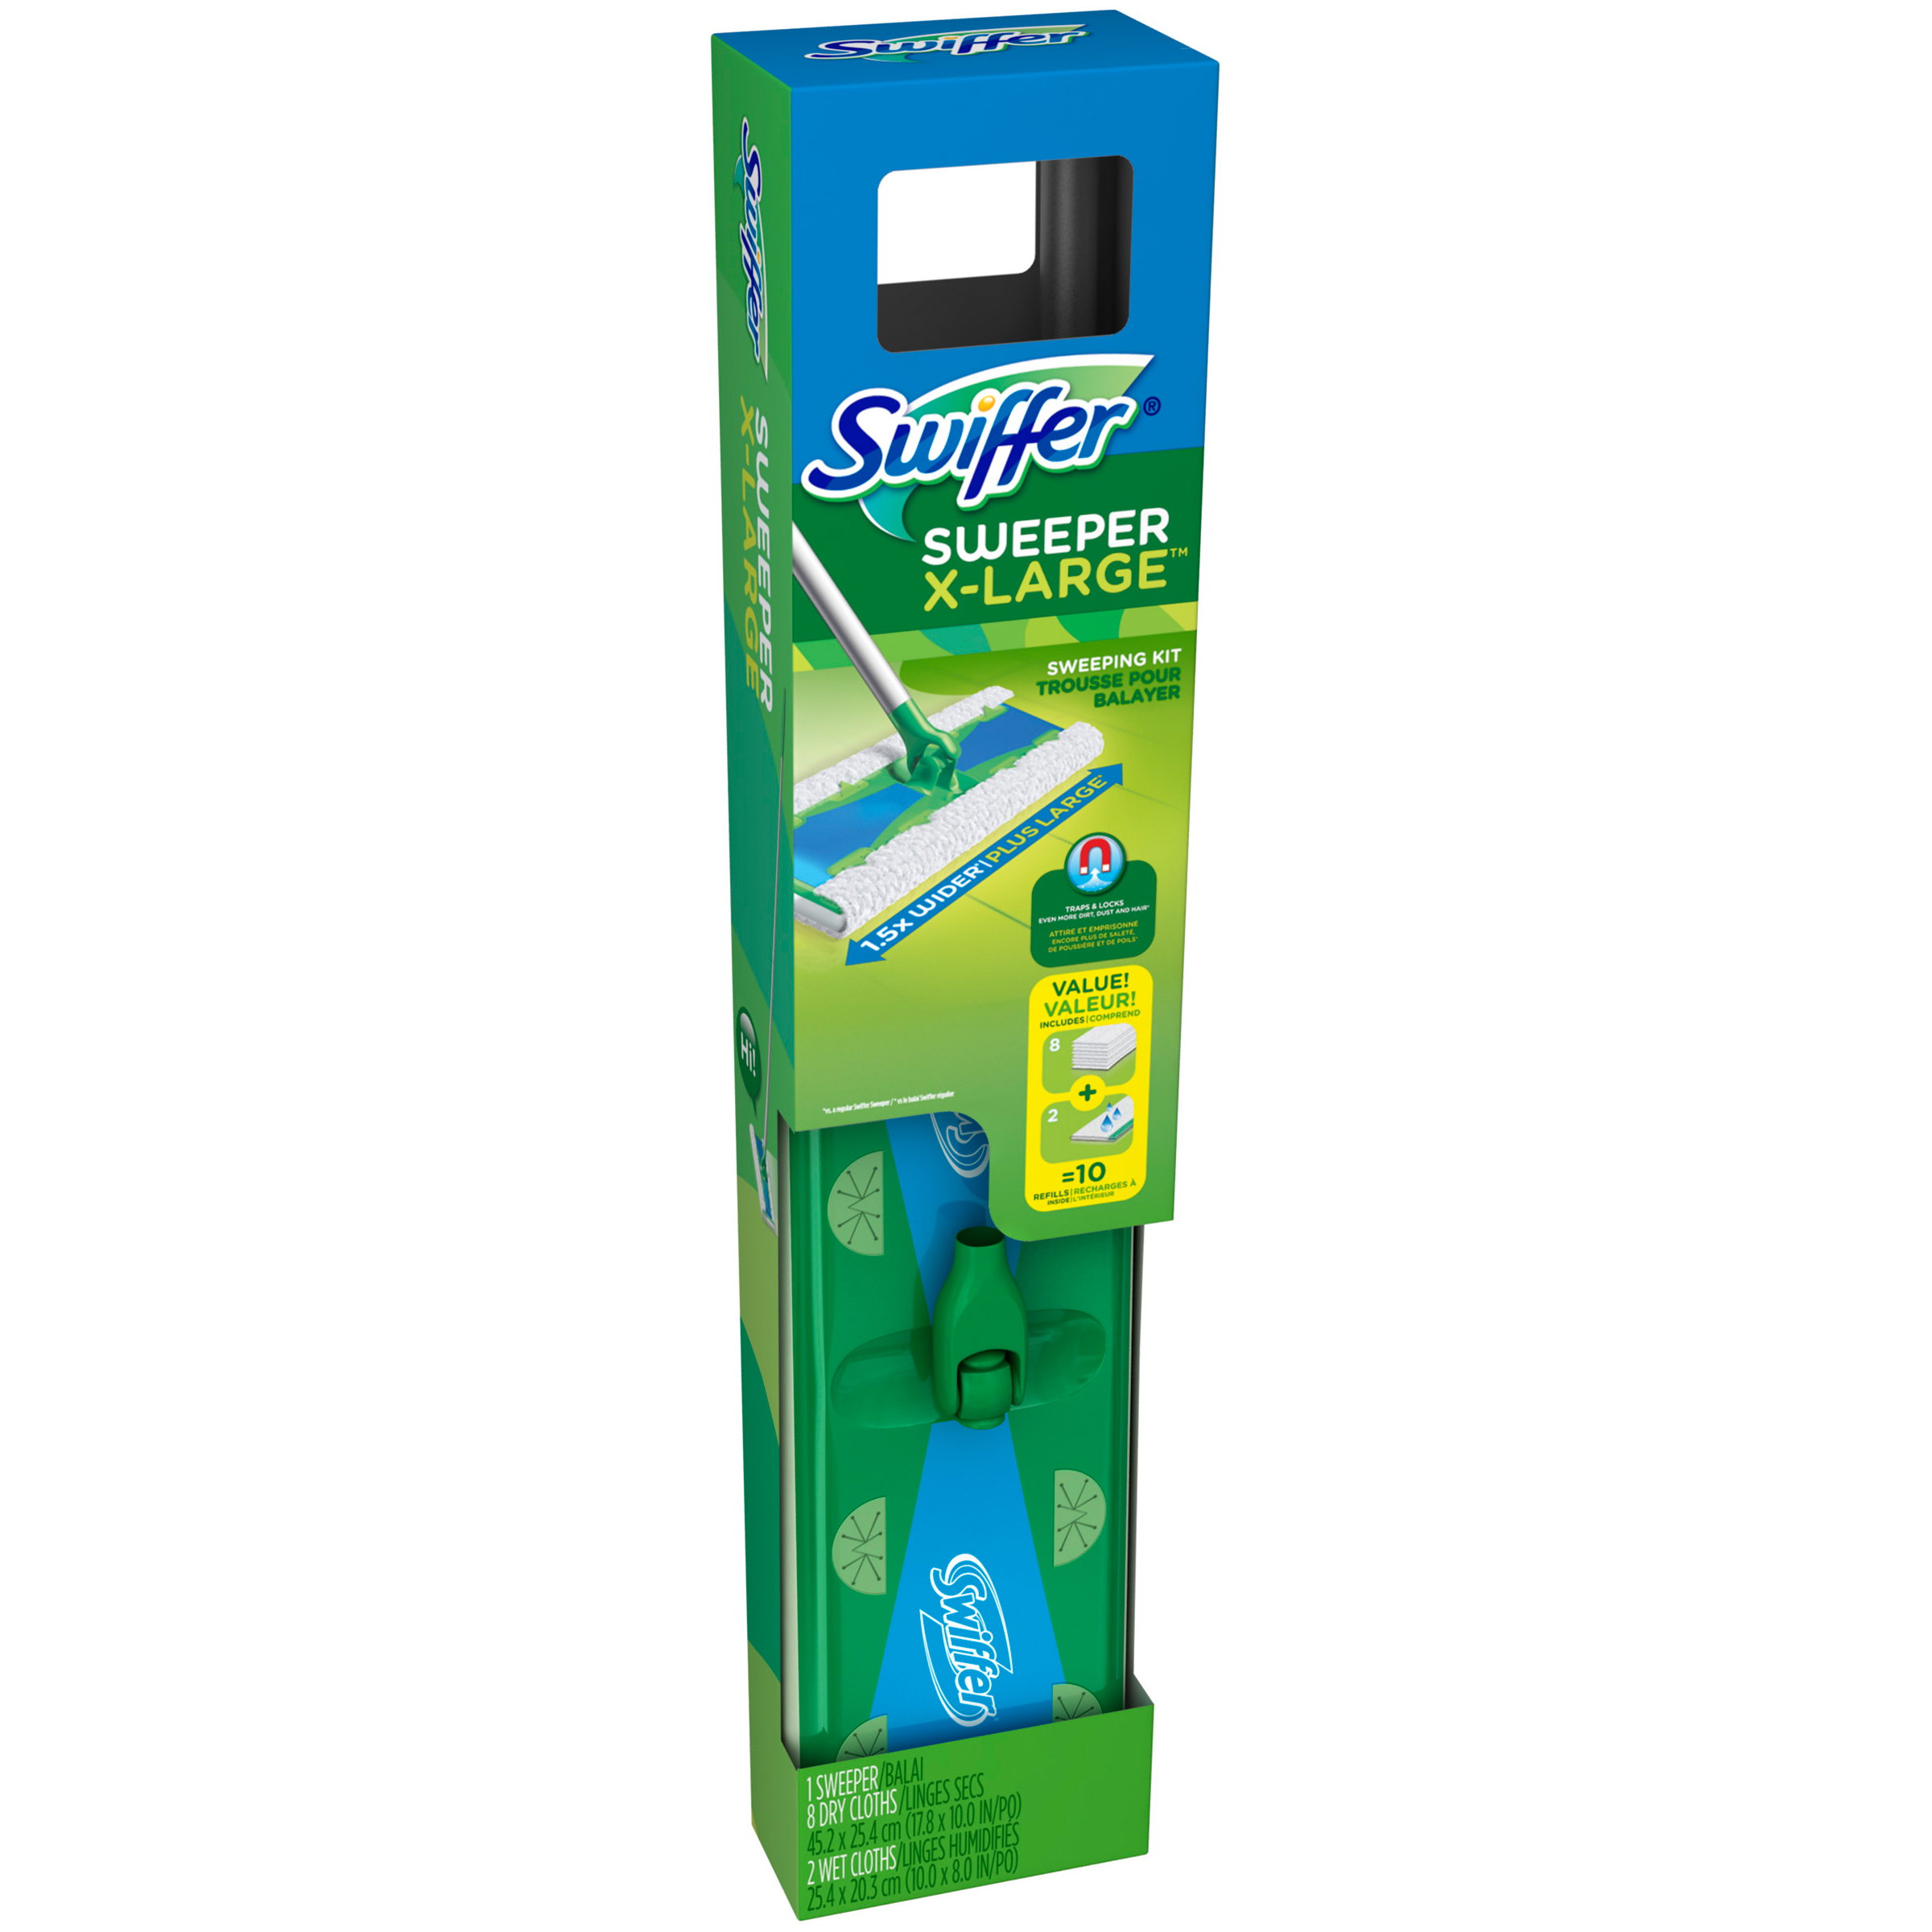 Swiffer Sweeper X-Large Floor Mop Starter Kit